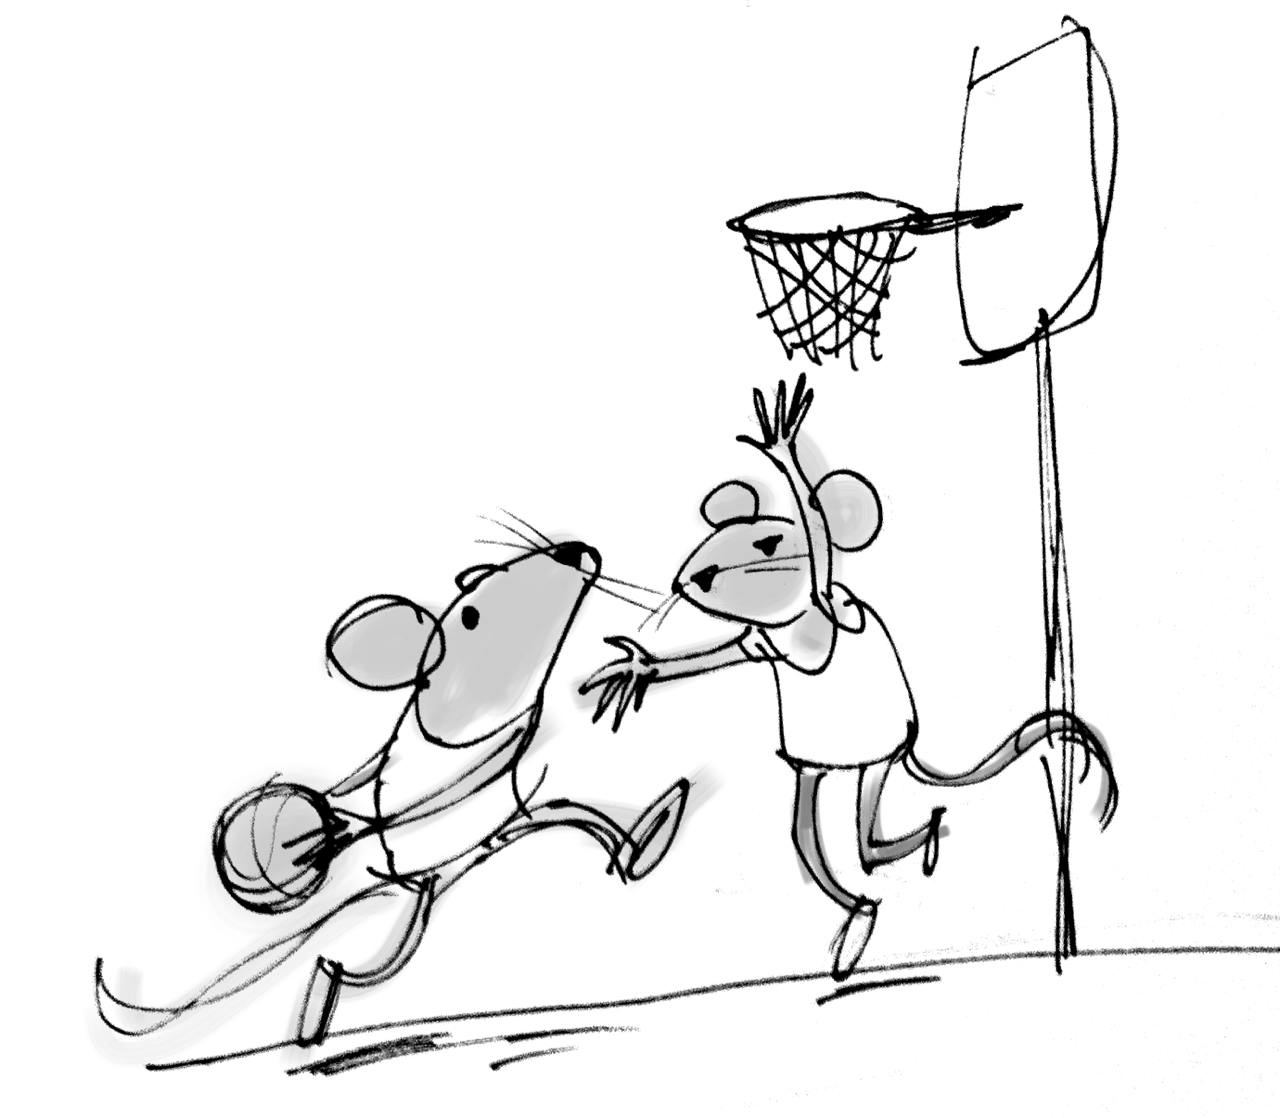 Free Basketballl Drawings Download Free Clip Art Free Clip Art On Clipart Library